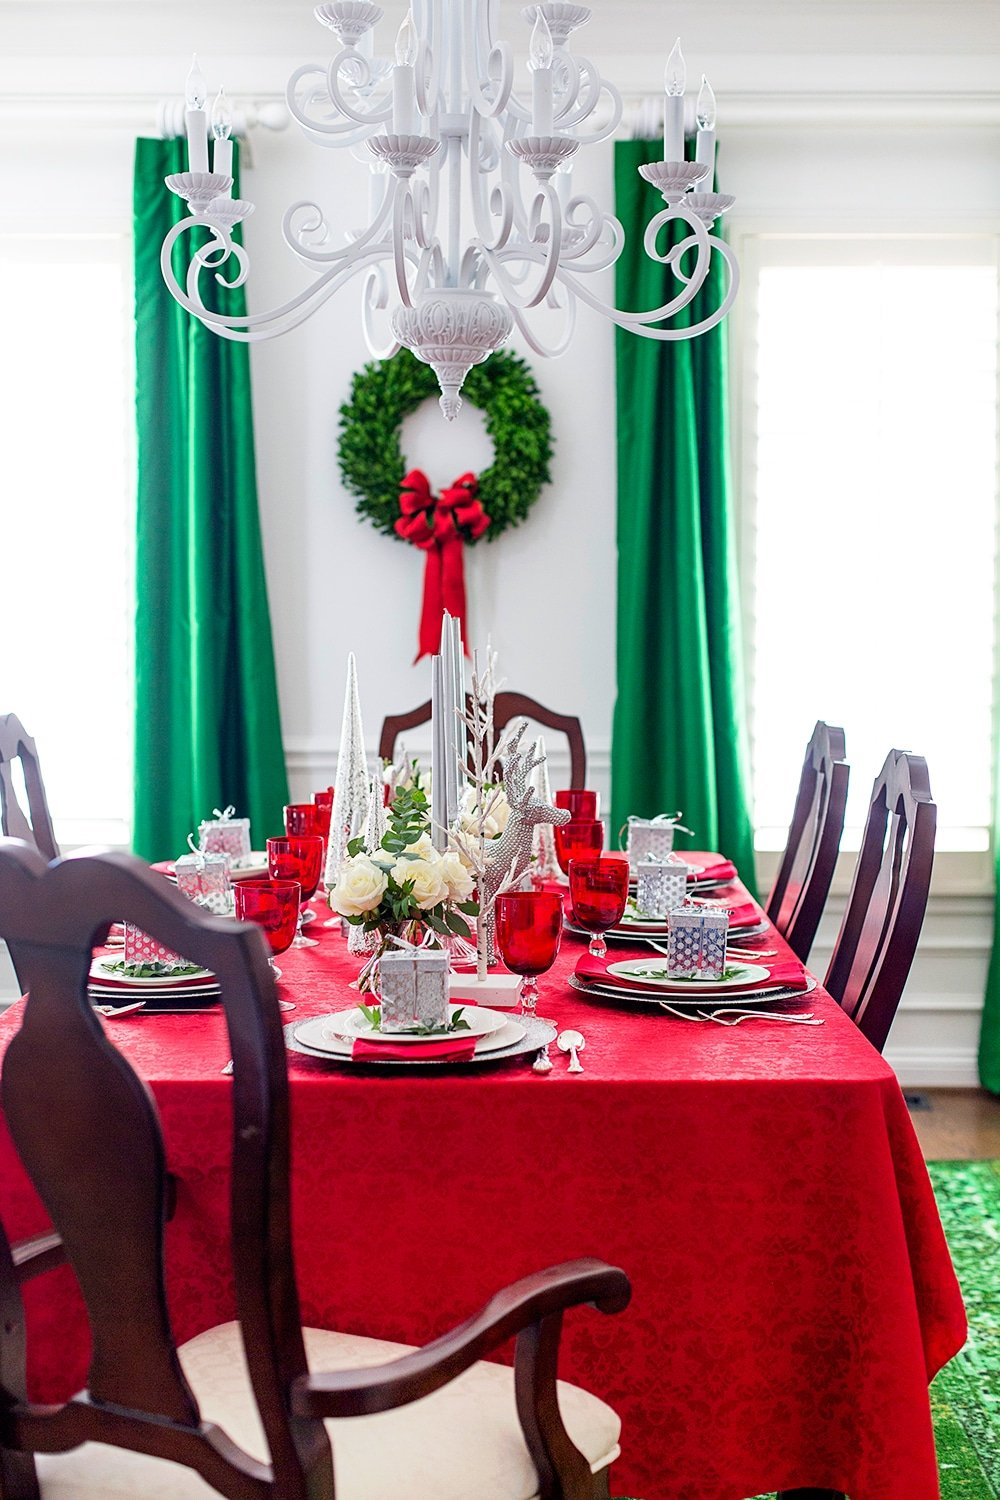 Holidays With Your Neighbors: Party Inspiration + More!